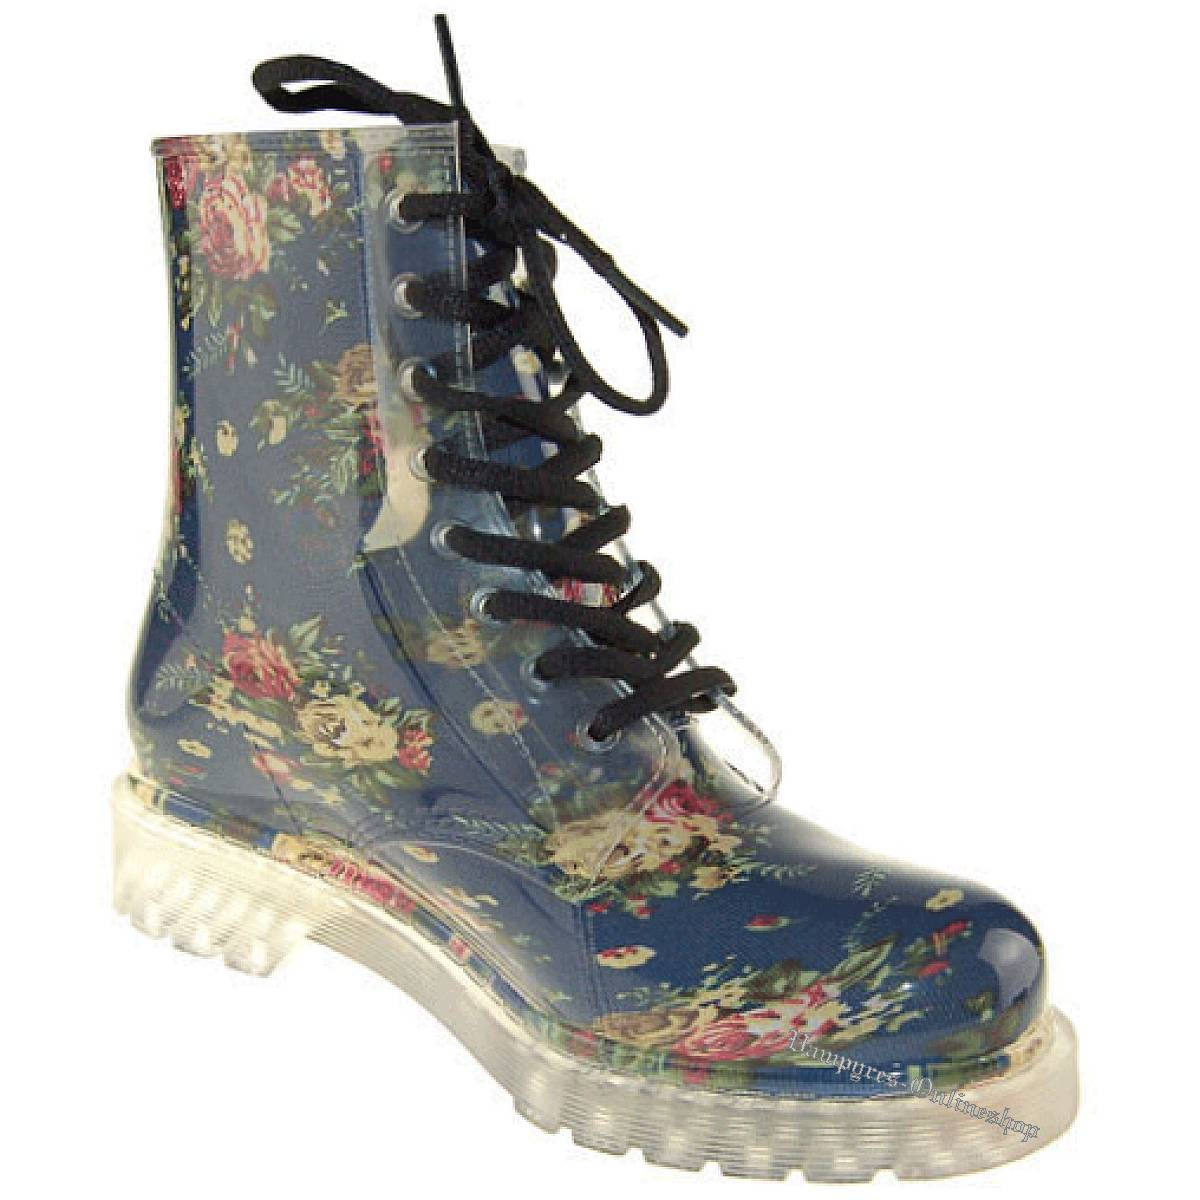 Silicone Valley 8-Loch Flower Rain Boot Gummistiefel